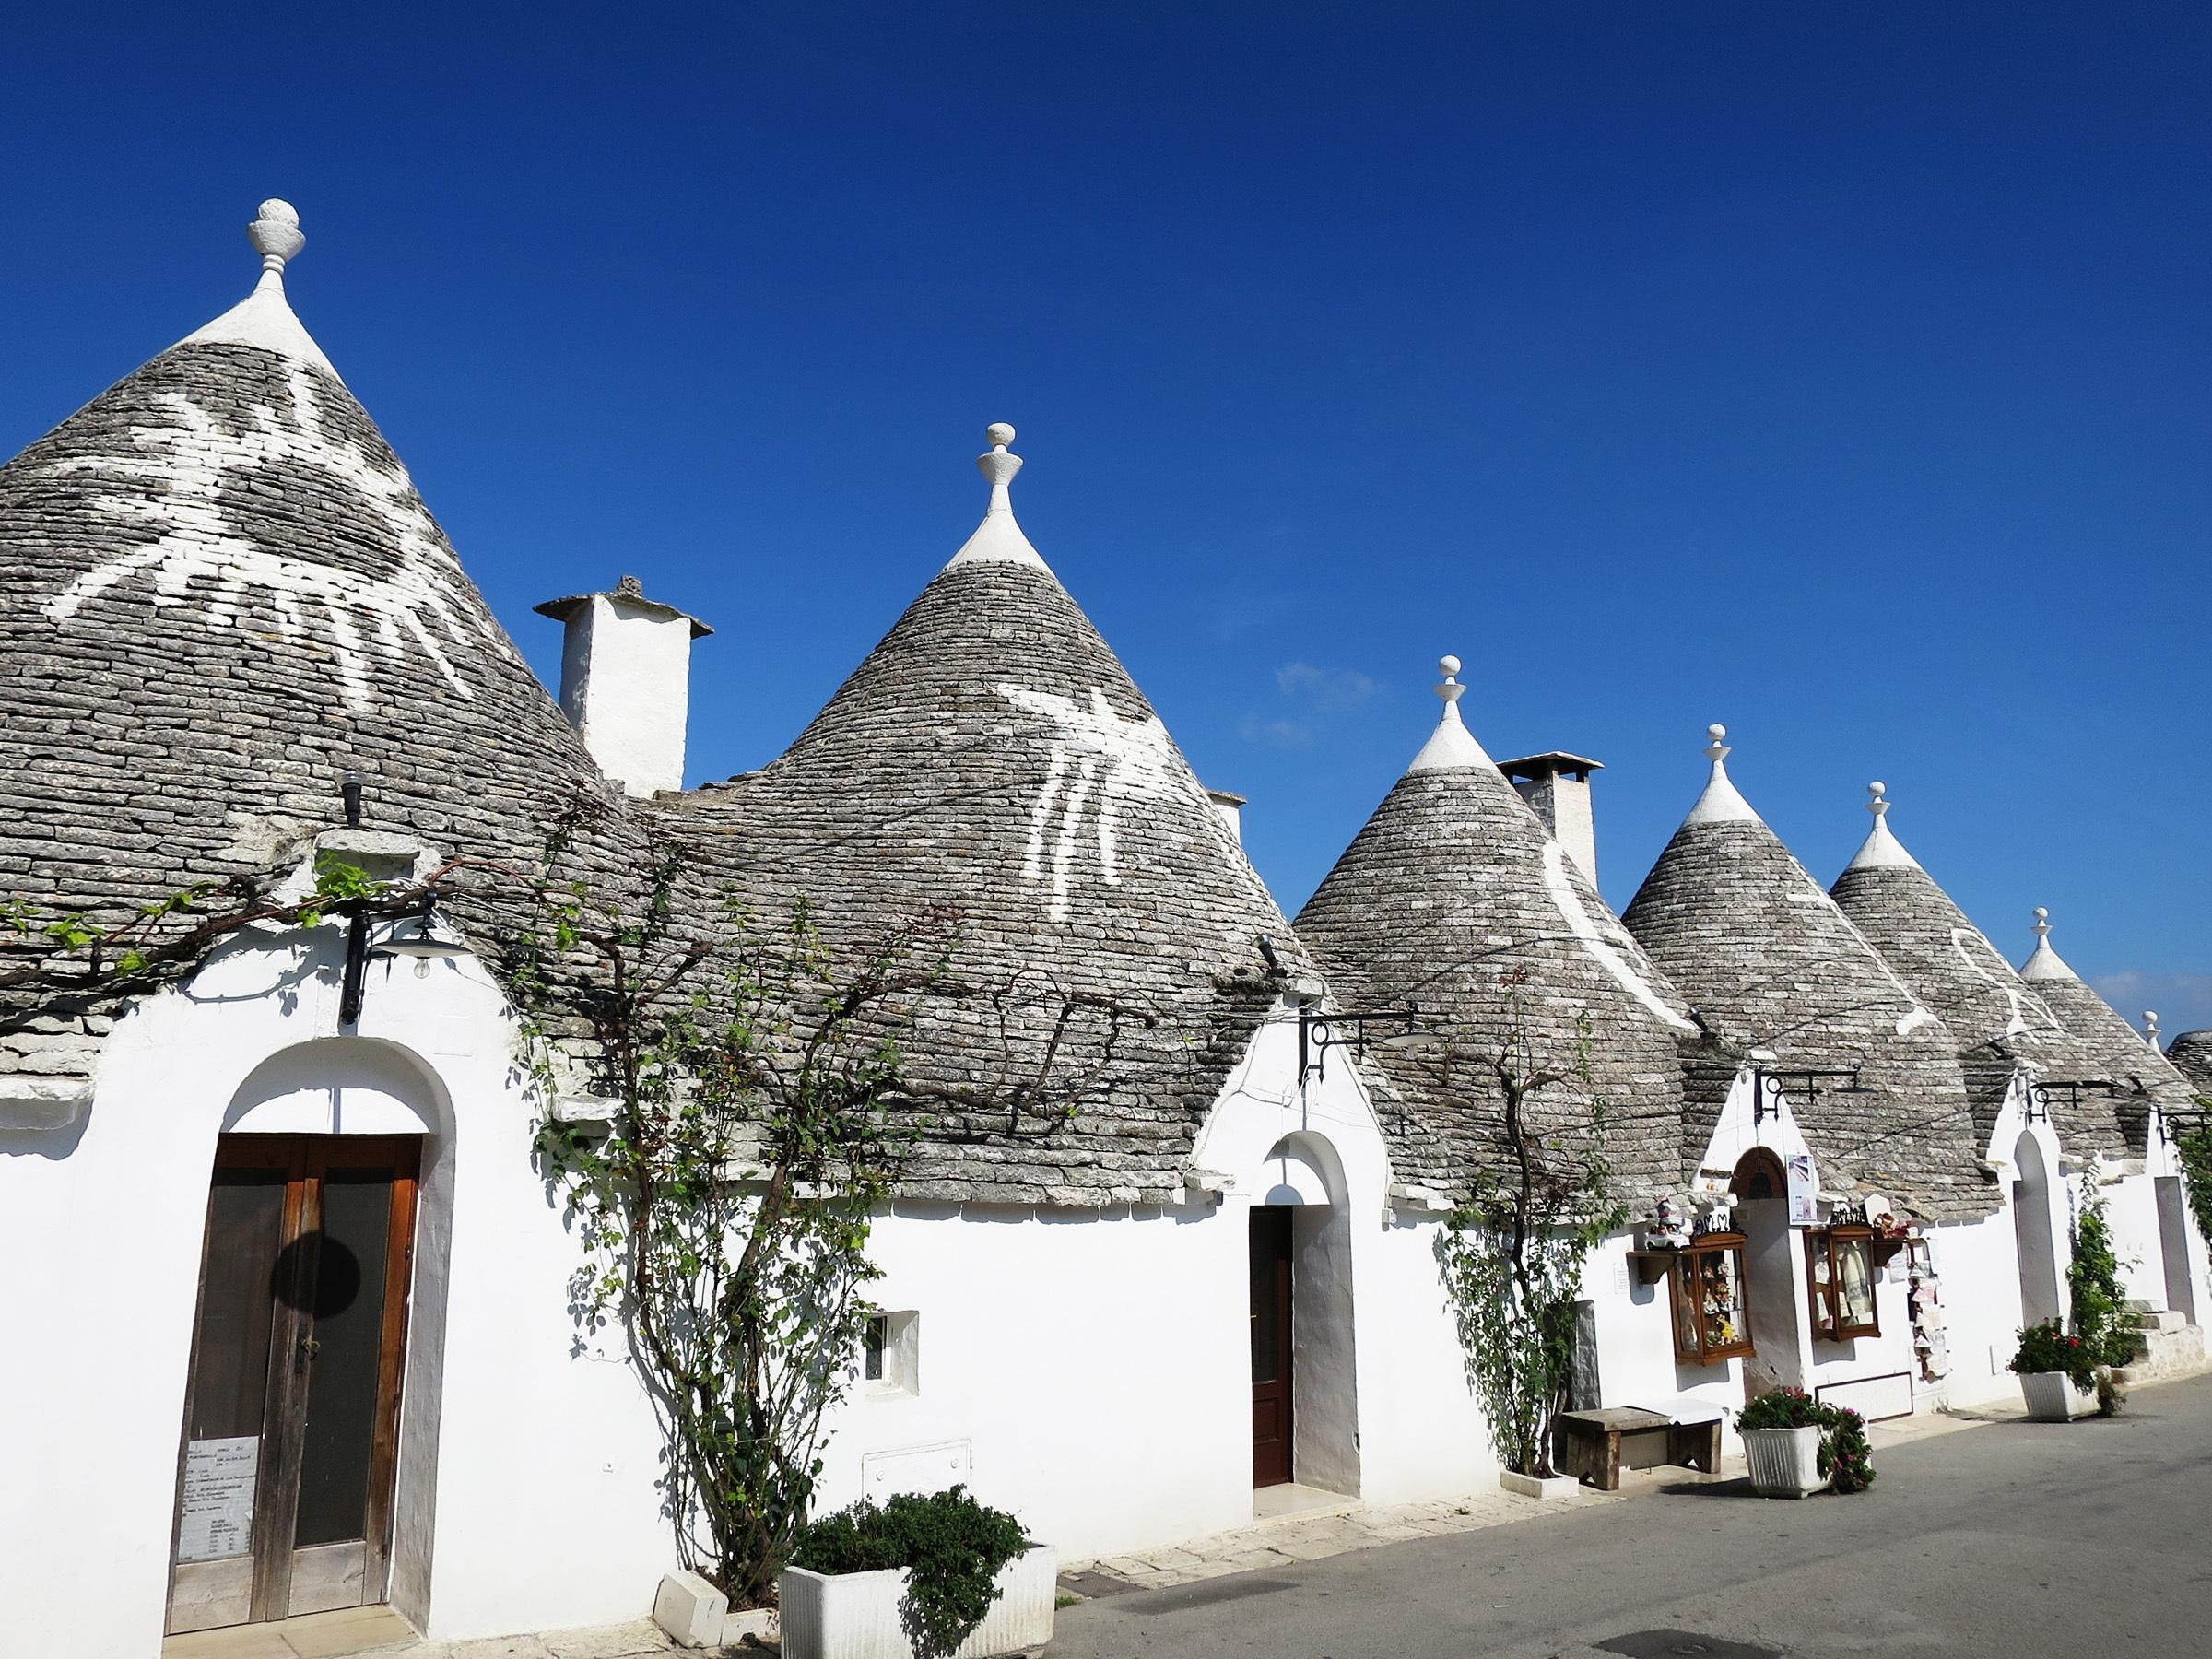 How to Spend 2 Days in Alberobello and Locorotondo